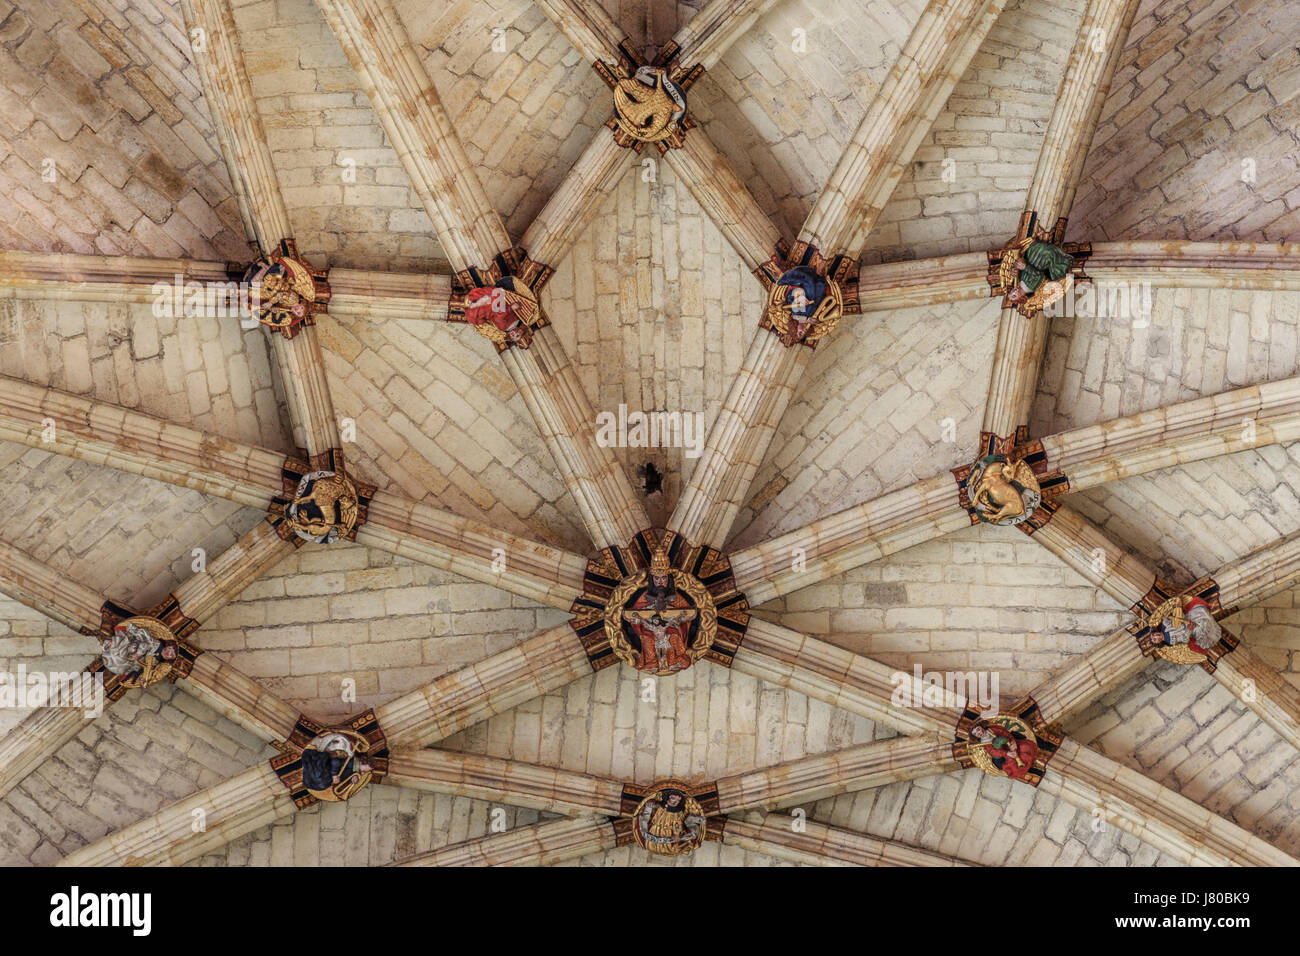 France, Gers,, condom, on the way to Saint Jacques de Compostela, Saint Pierre cathedral, ribbed vault of the ceiling - Stock Image